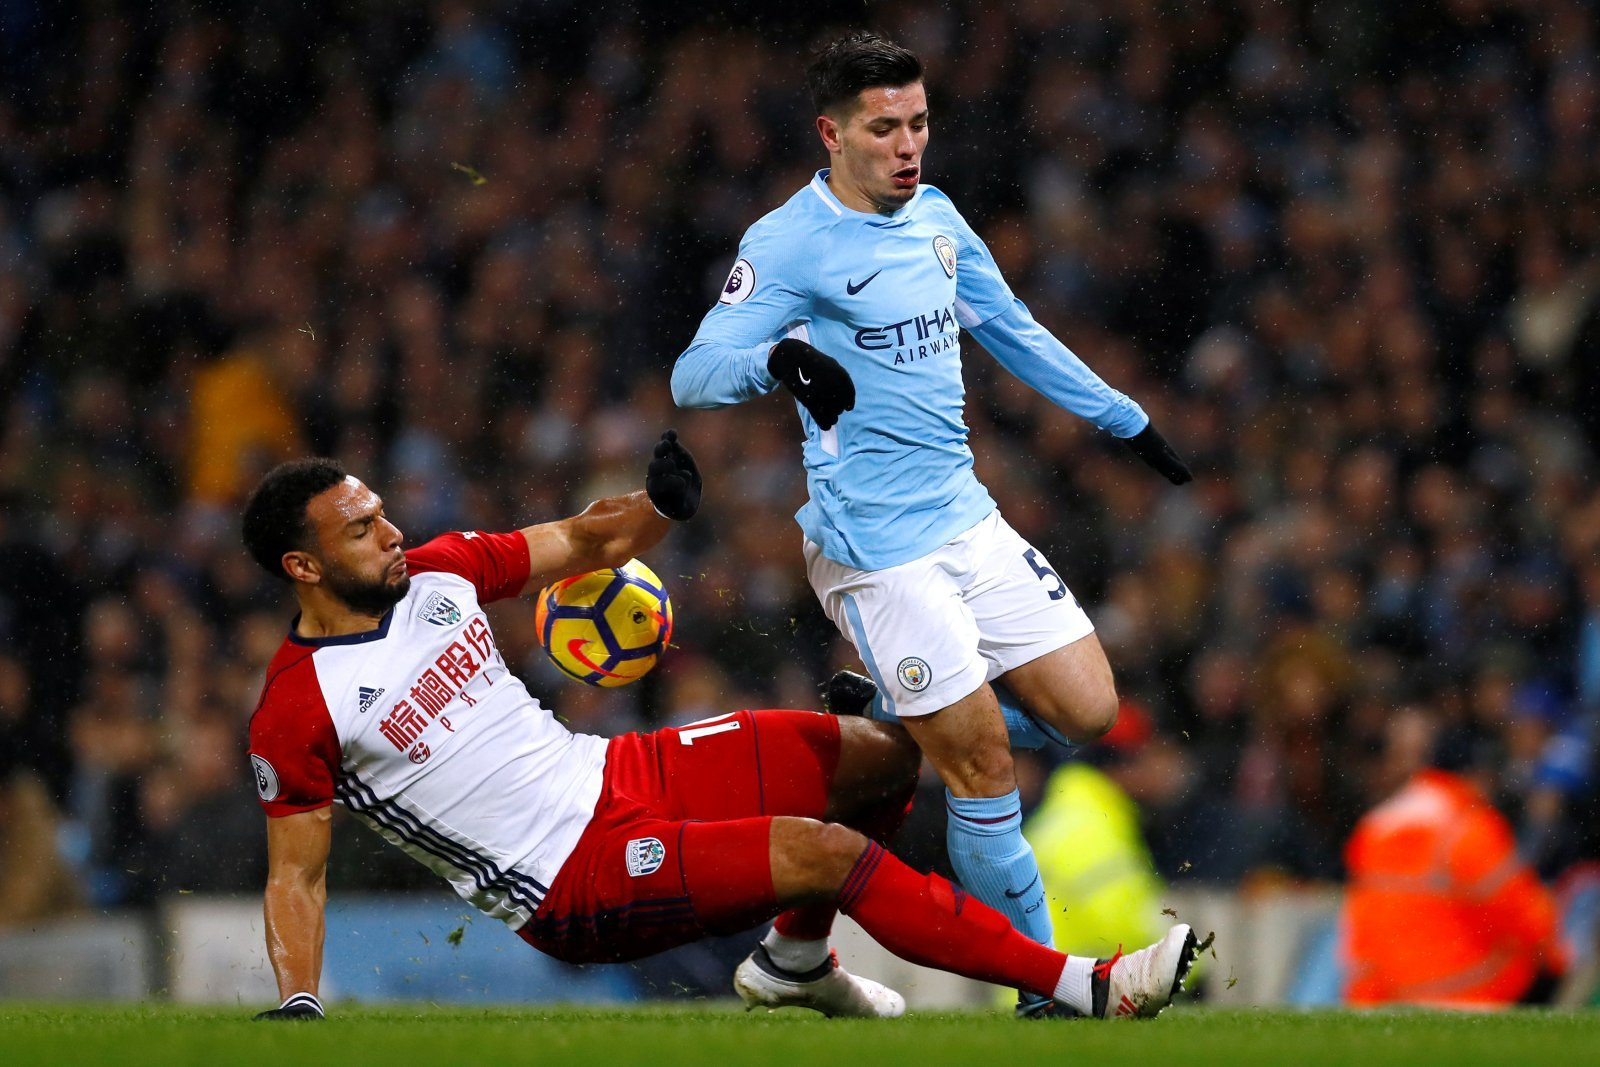 Celtic should absolutely make a move for Manchester City's Brahim Diaz